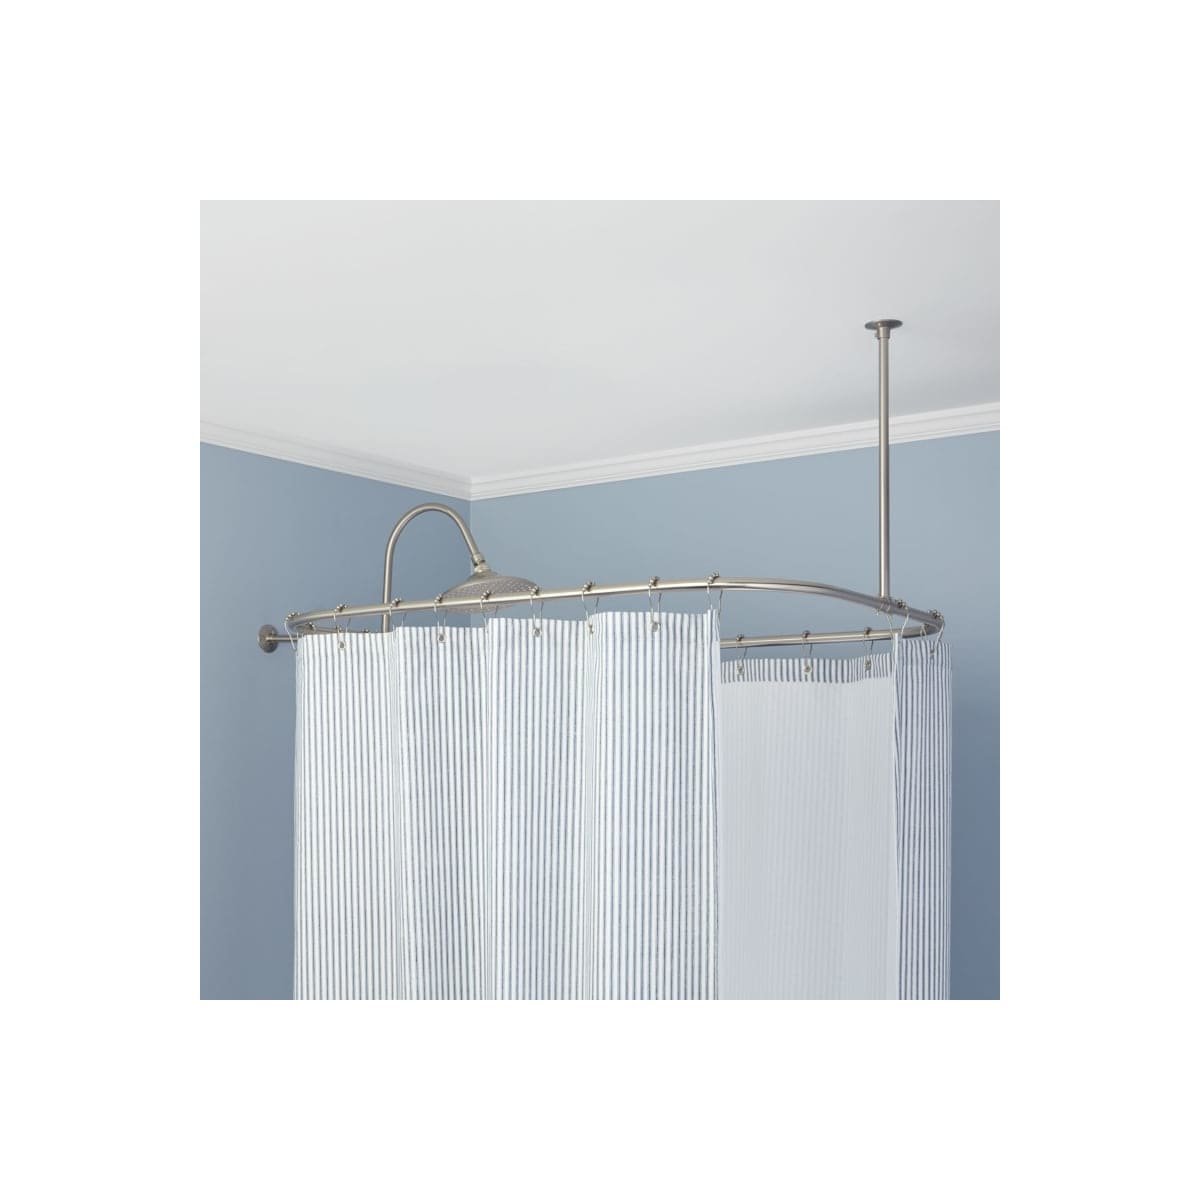 Signature Hardware 345605 54 X 32 Rectangular Solid Br Ceiling And Wall Mounted Shower Curtain Rod